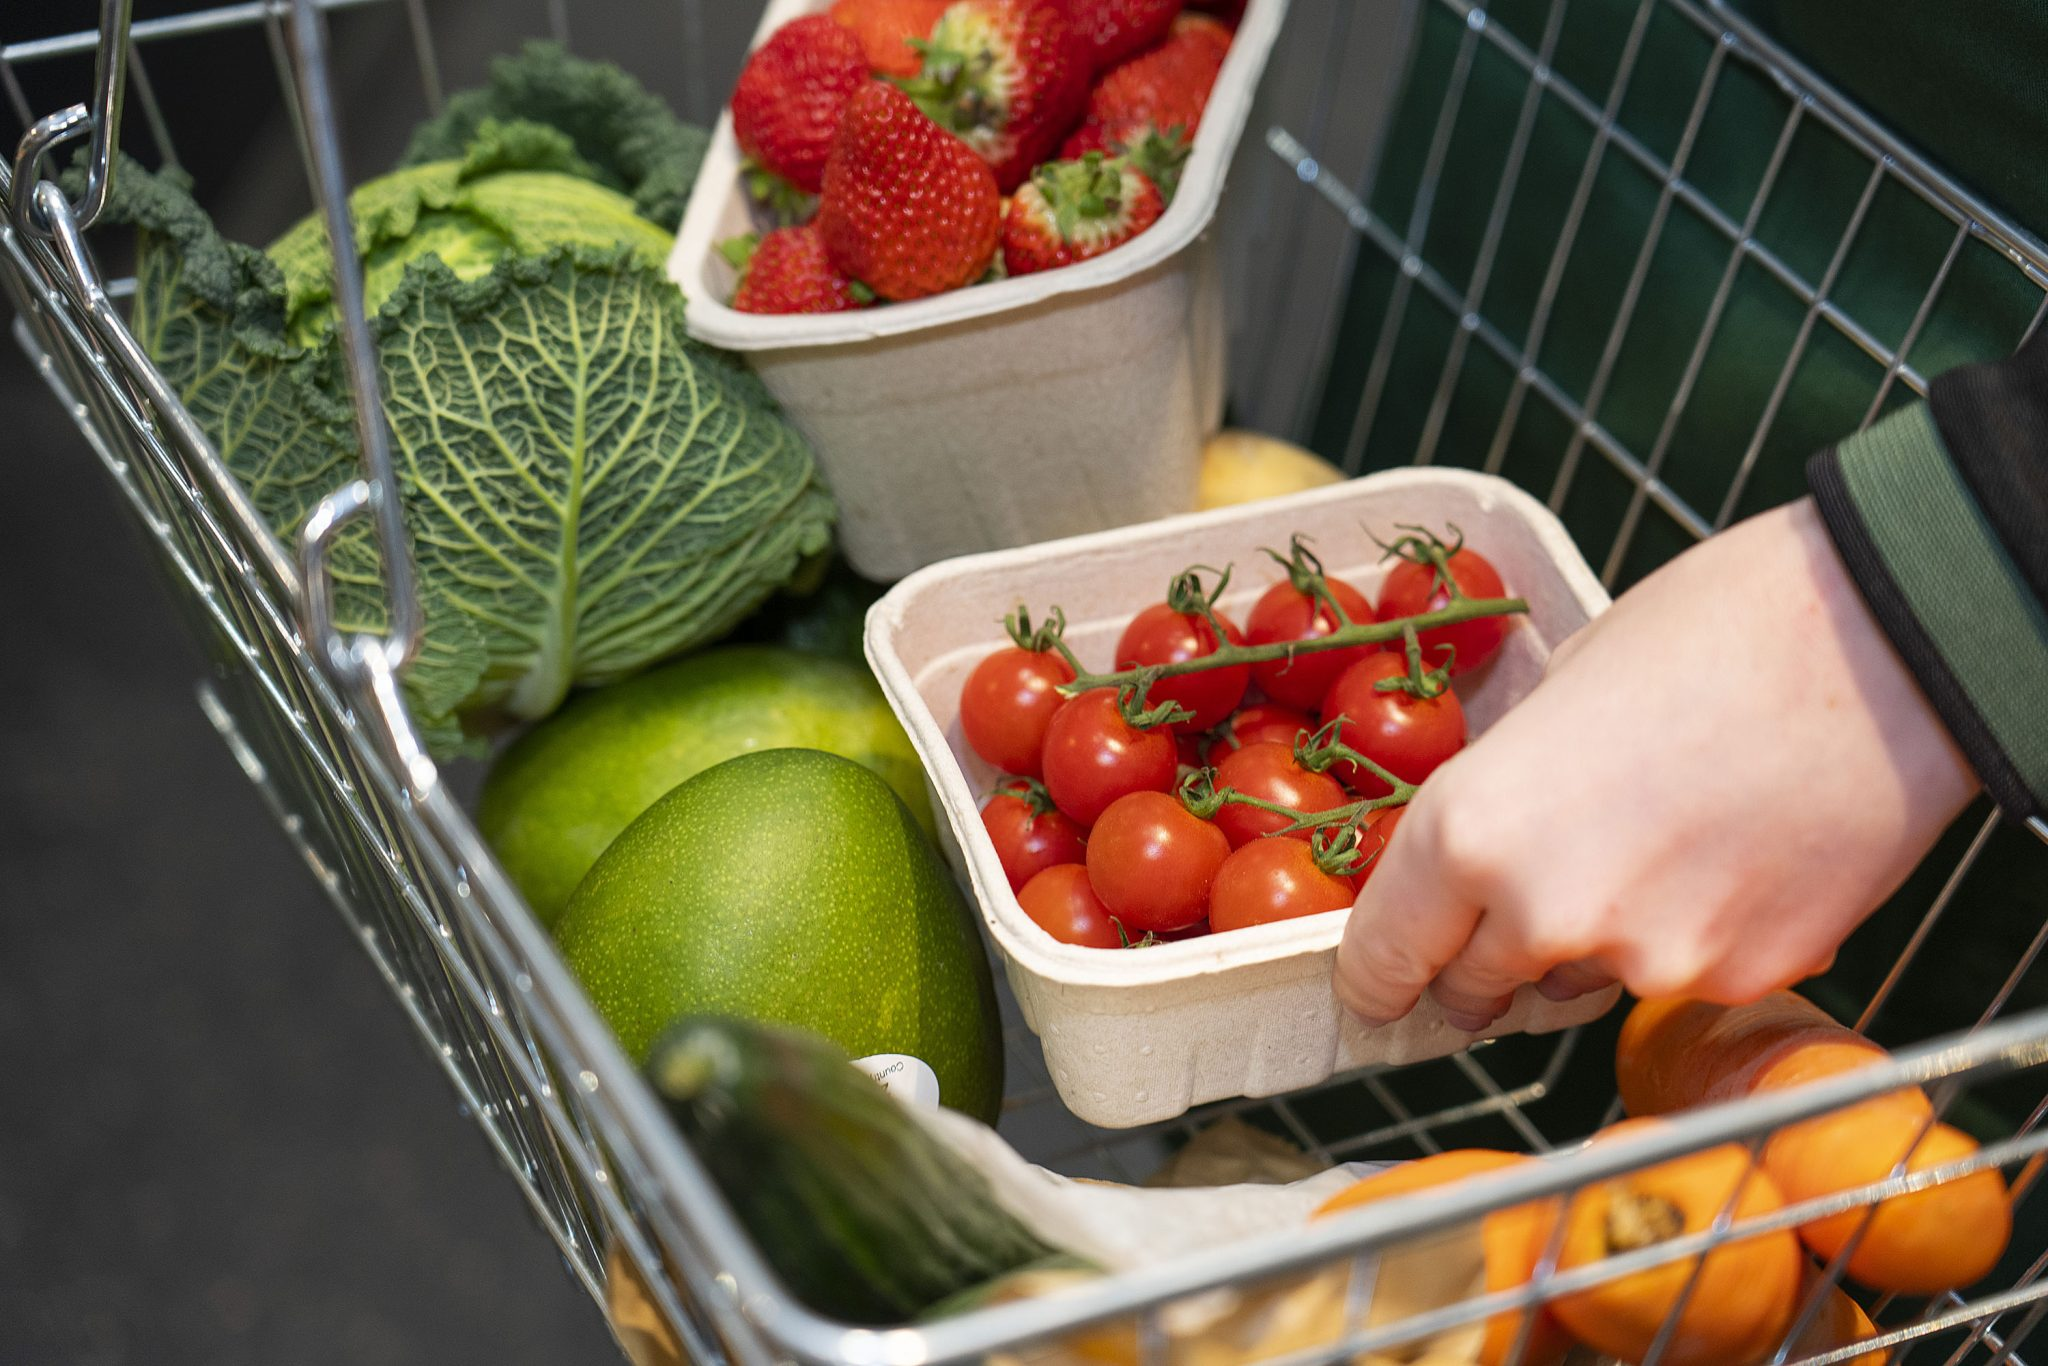 M&S focused on food product and packaging innovation